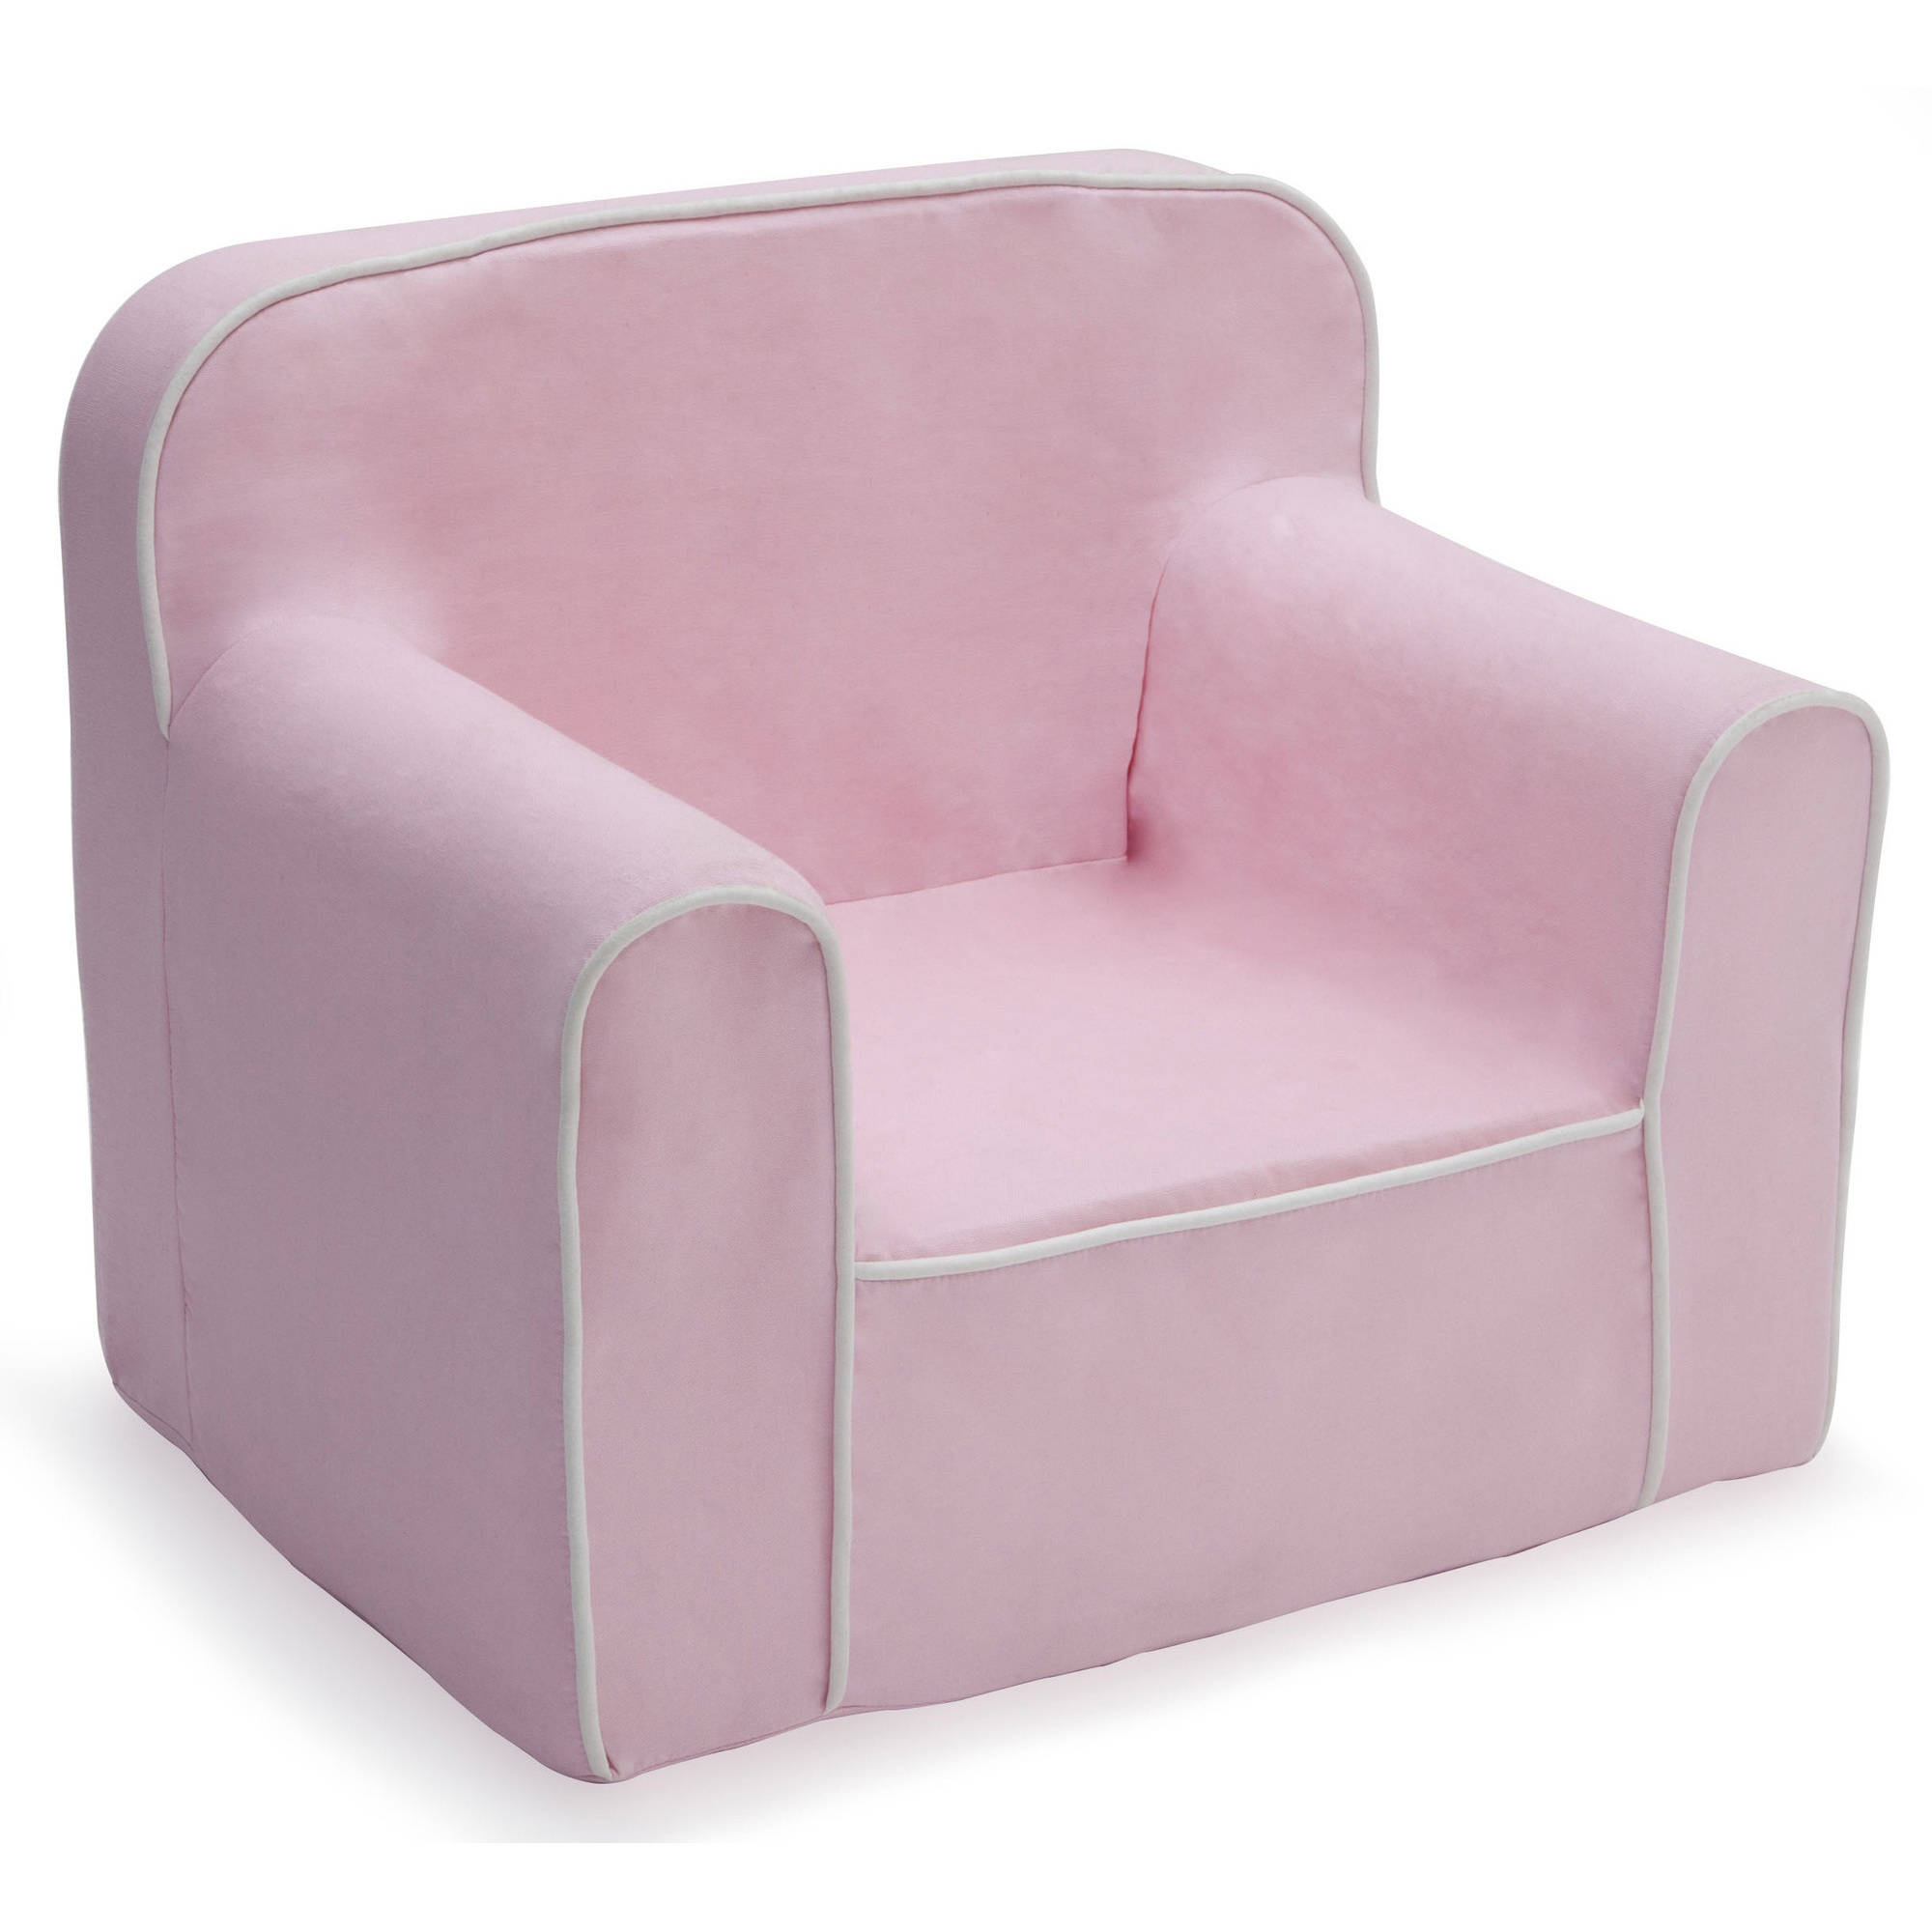 Delta Children Foam Snuggle Chair Walmart